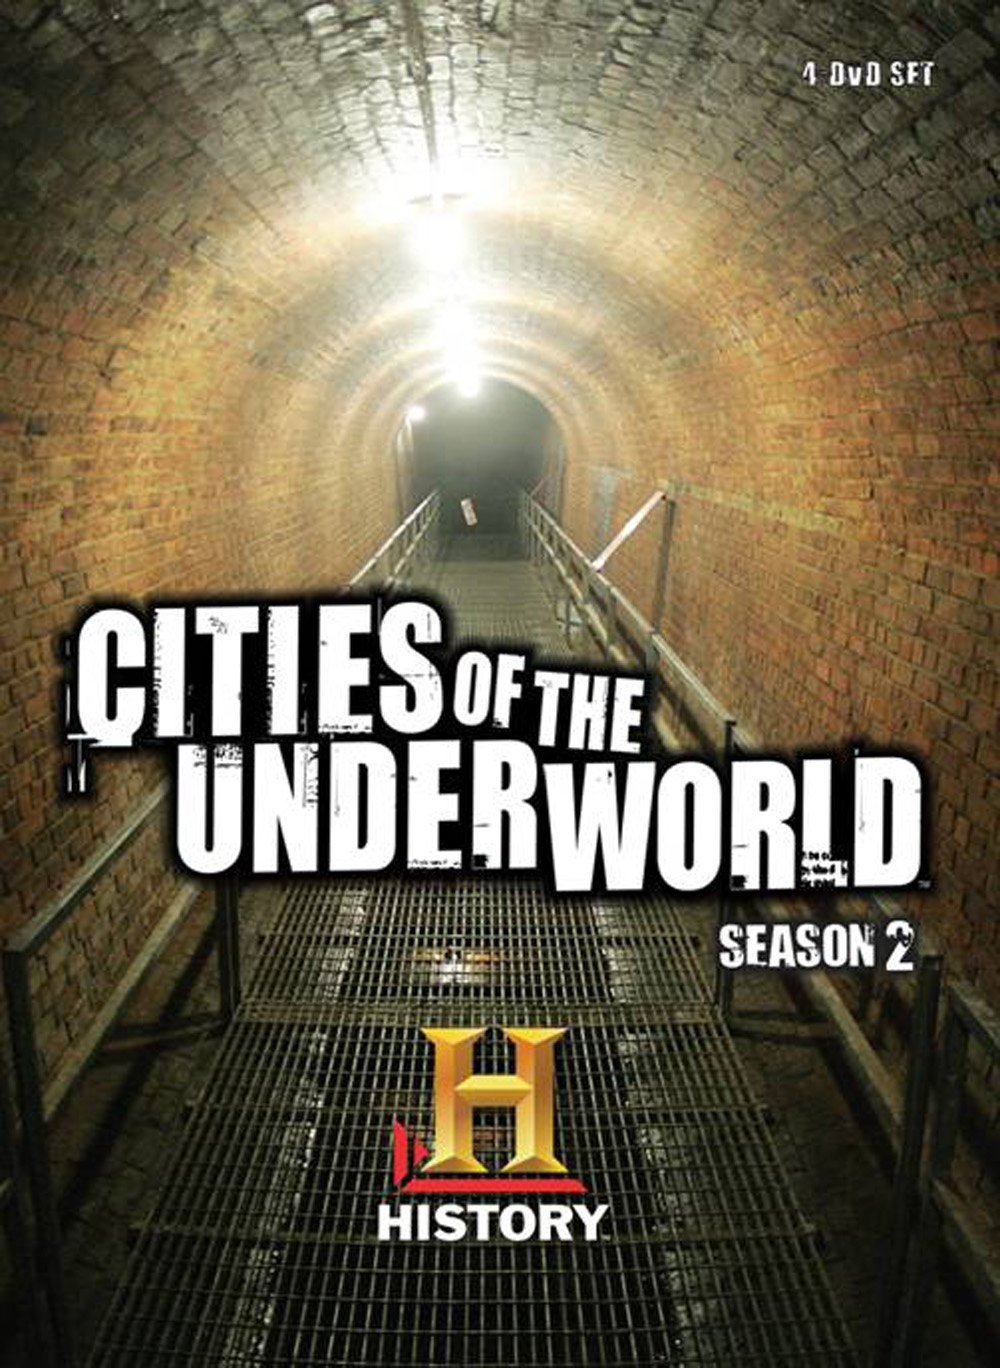 Cities of the Underworld: Season 2 by A&E HOME VIDEO